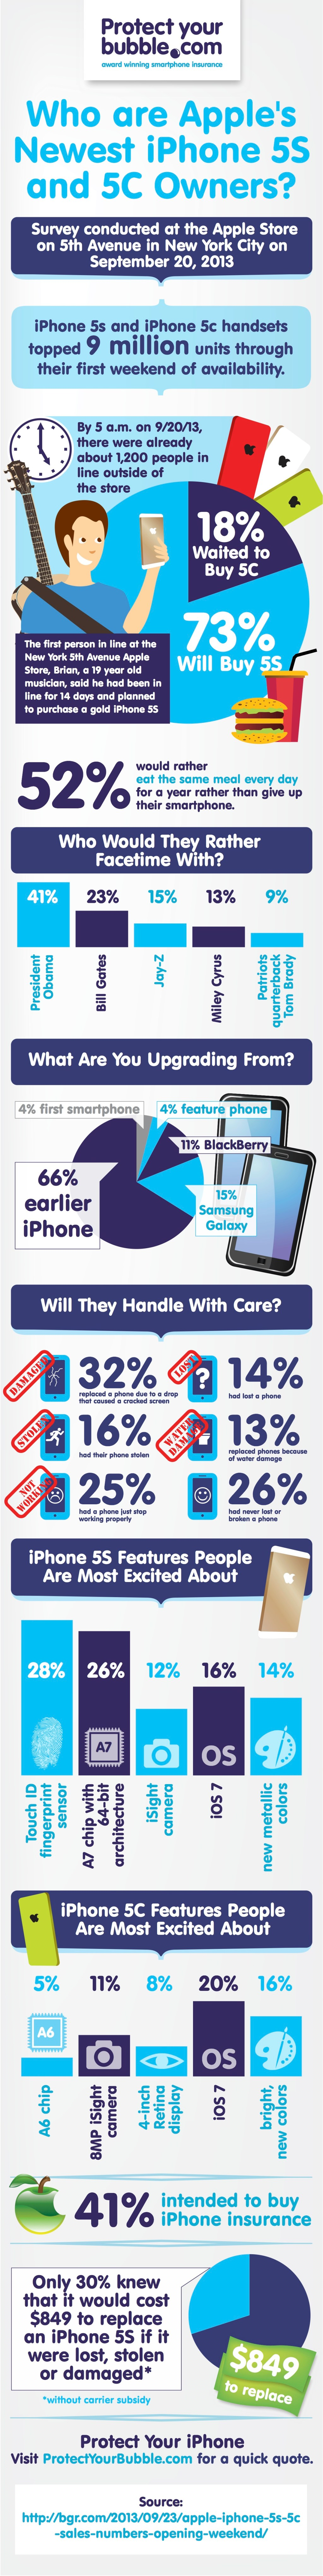 iPhone 5S and iPhone 5C infographic